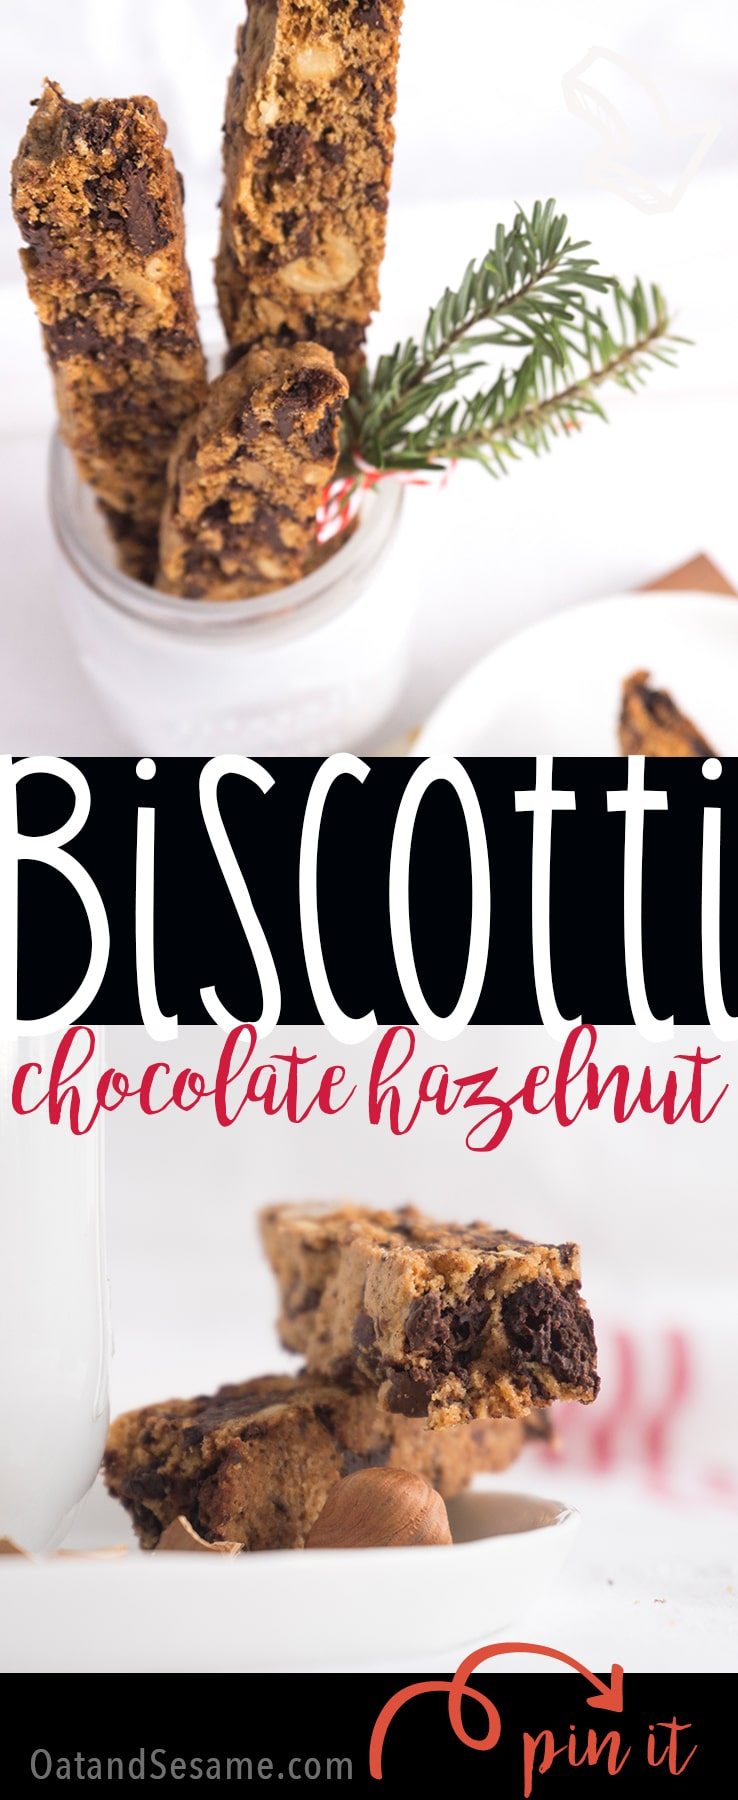 Dark Chocolate Hazelnut Biscotti - the perfect holiday gift. Crunchy and full of chocolate hazelnut goodness. Did I mention they are perfect for dunking in coffee for breakfast!   HOLIDAY BAKING   BISCOTTI   HAZELNUT   COOKIES   Recipe at OatandSesame.com